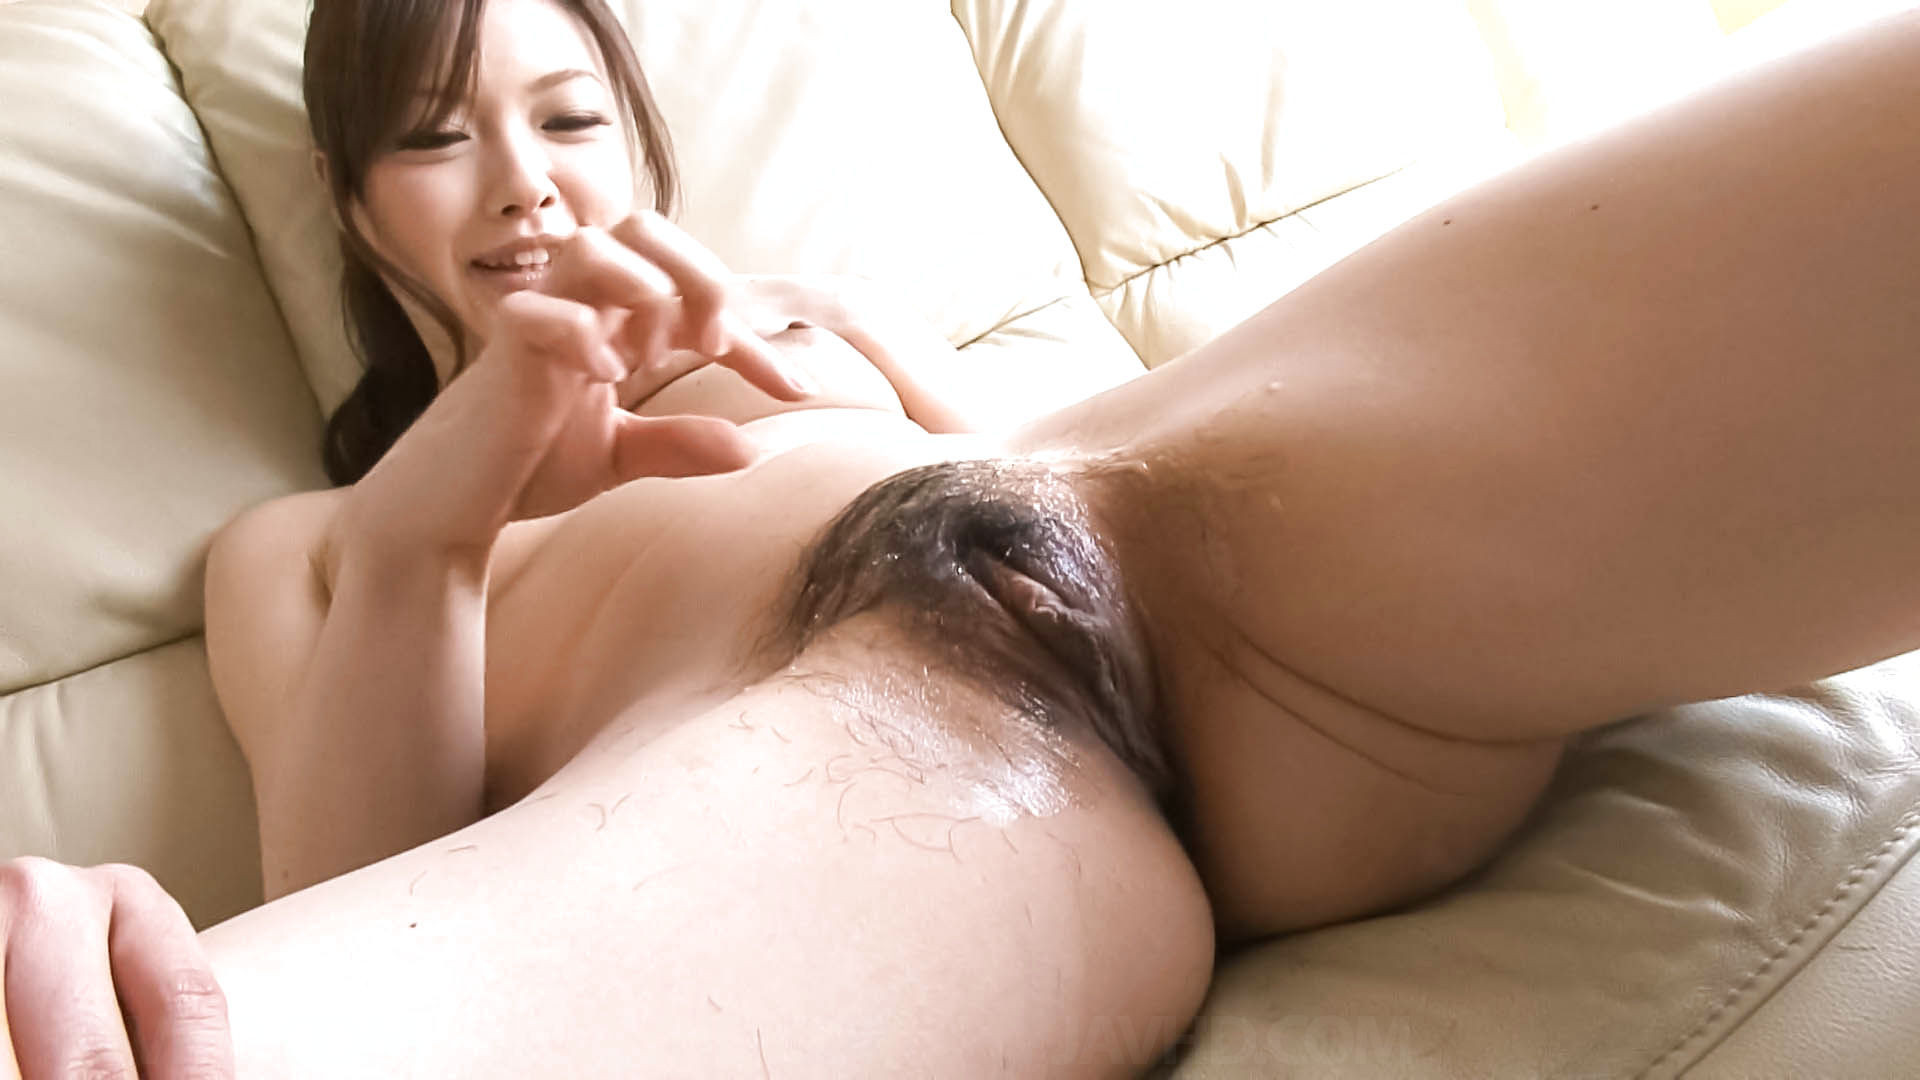 Hot asian gystyle videos girl fucked